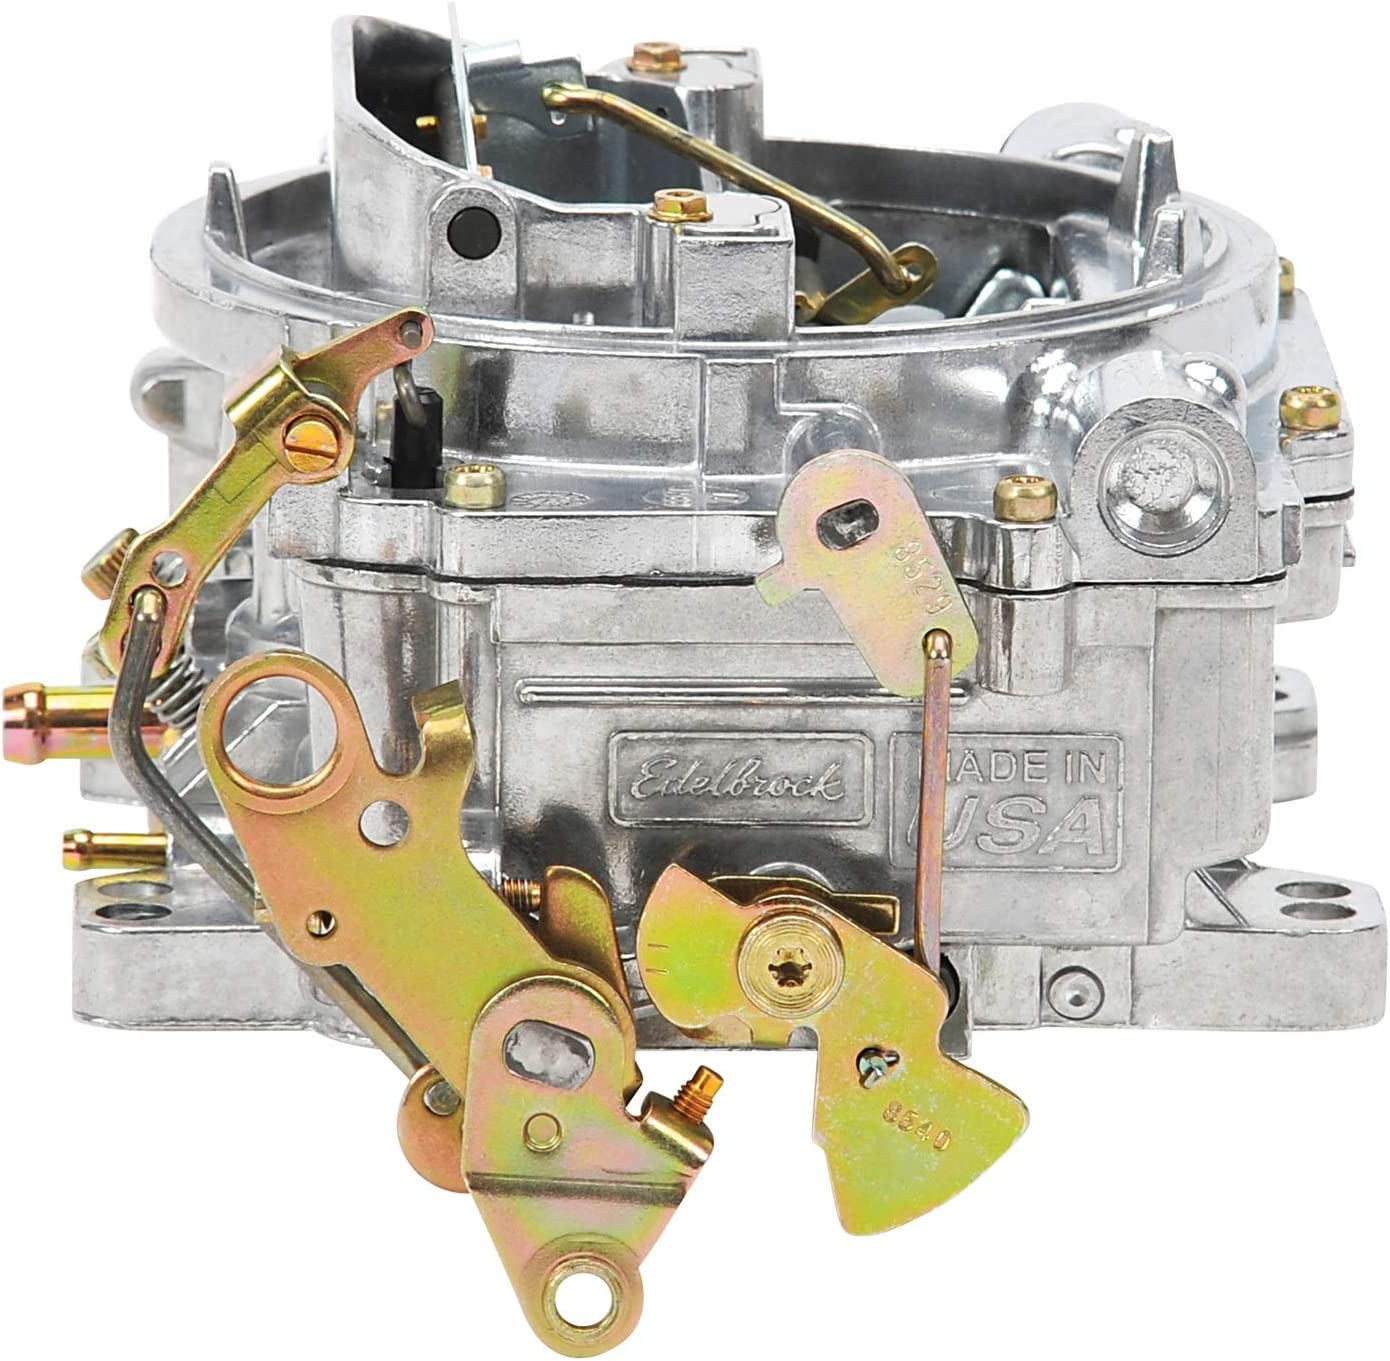 3. Edelbrock 1405 Performer 600 CFM Square Bore 4-Barrel Air Valve Secondary Manual Choke New Carburetor